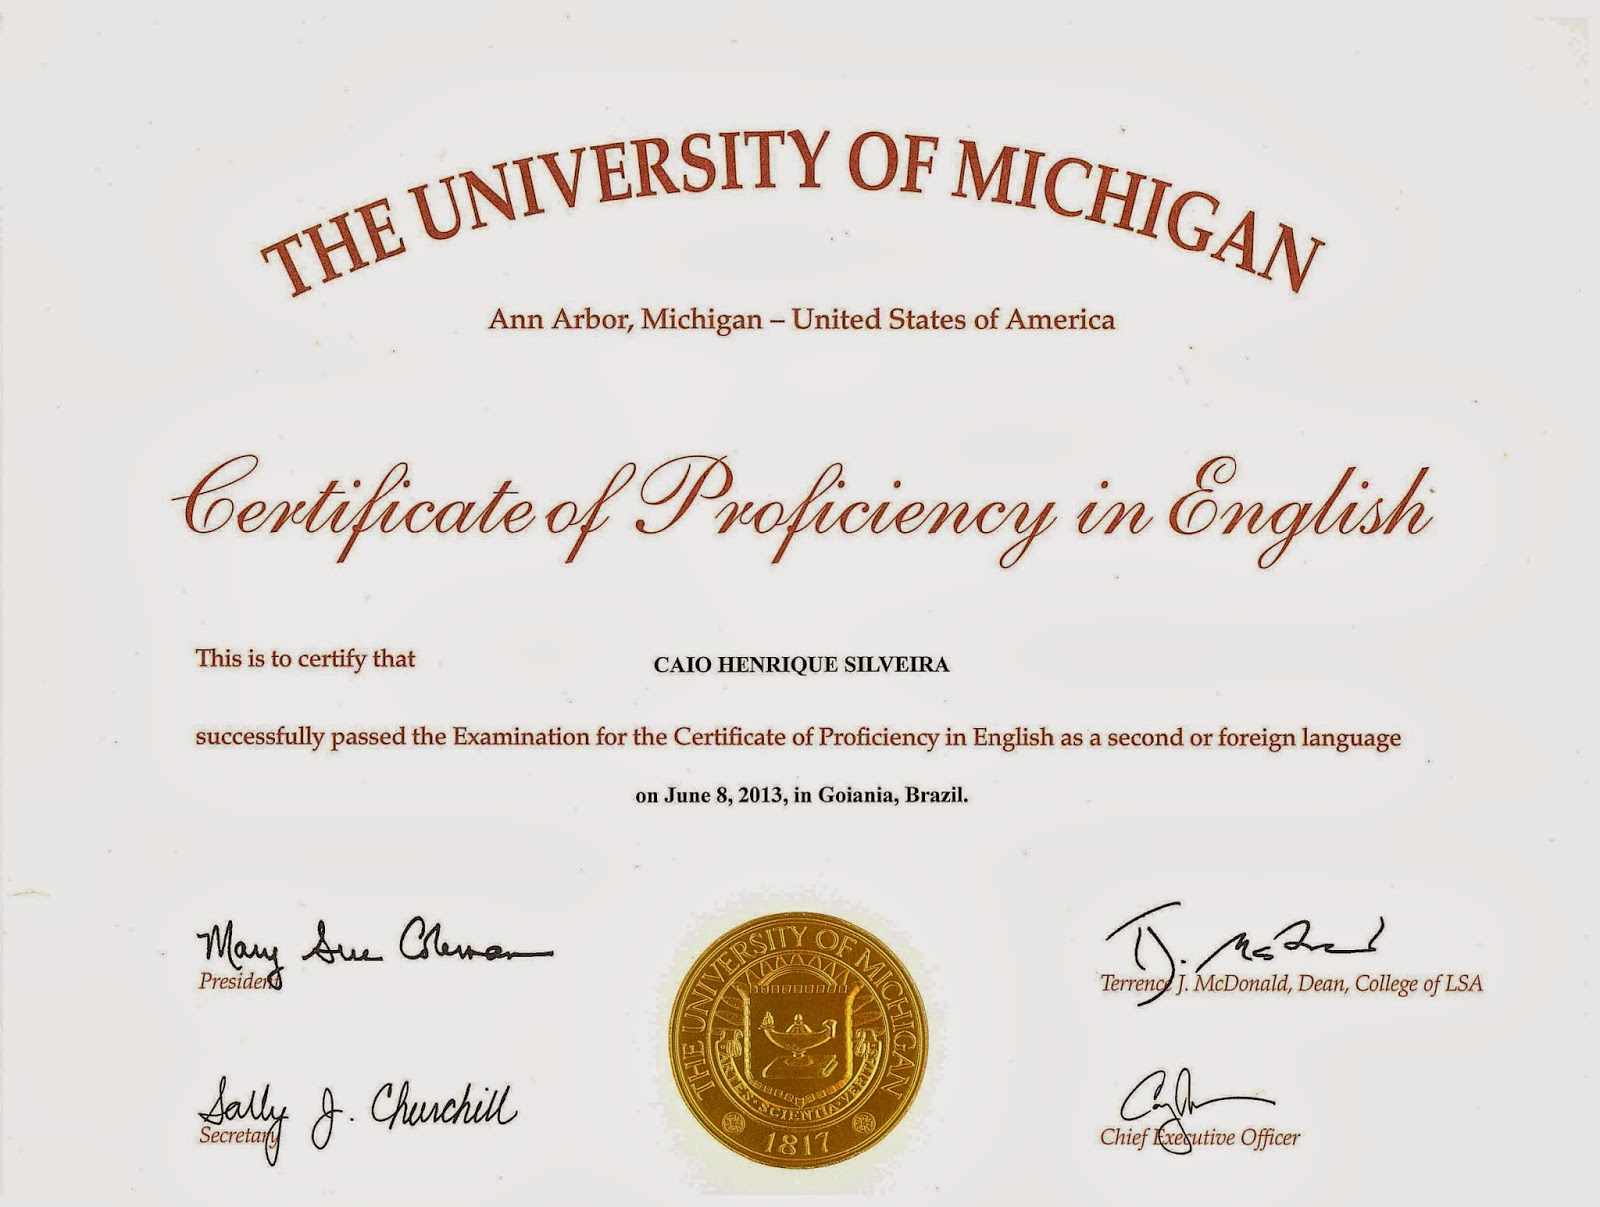 michigan ecpe essays Sample ecpe essays posted on april 23, 2017 cambridge michigan ecpe before beginning the sample sample ecpe essays test, read the ecpe sample test guide and download the answer sheet free gvr practice tests - essay about teacher as hero grammar, vocabulary, and reading samples of your english language examination.